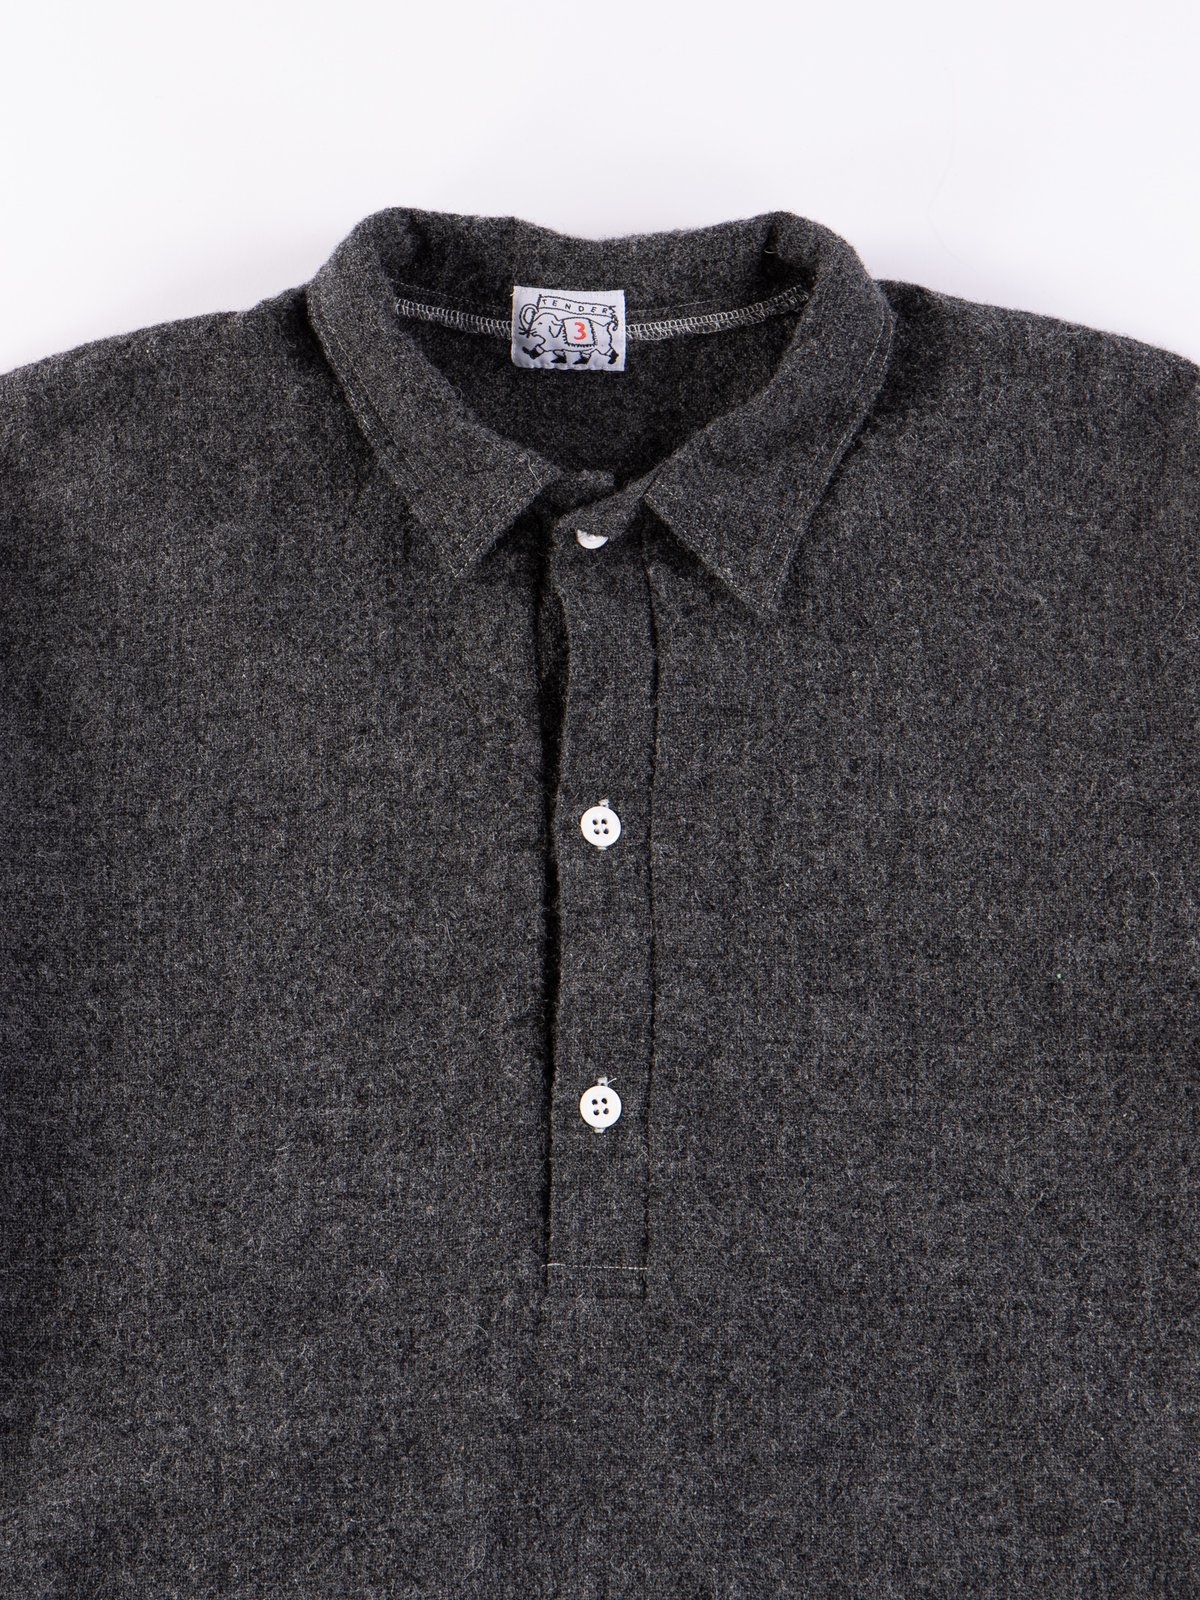 Charcoal Weavers Stock Pullover Tail Shirt - Image 3